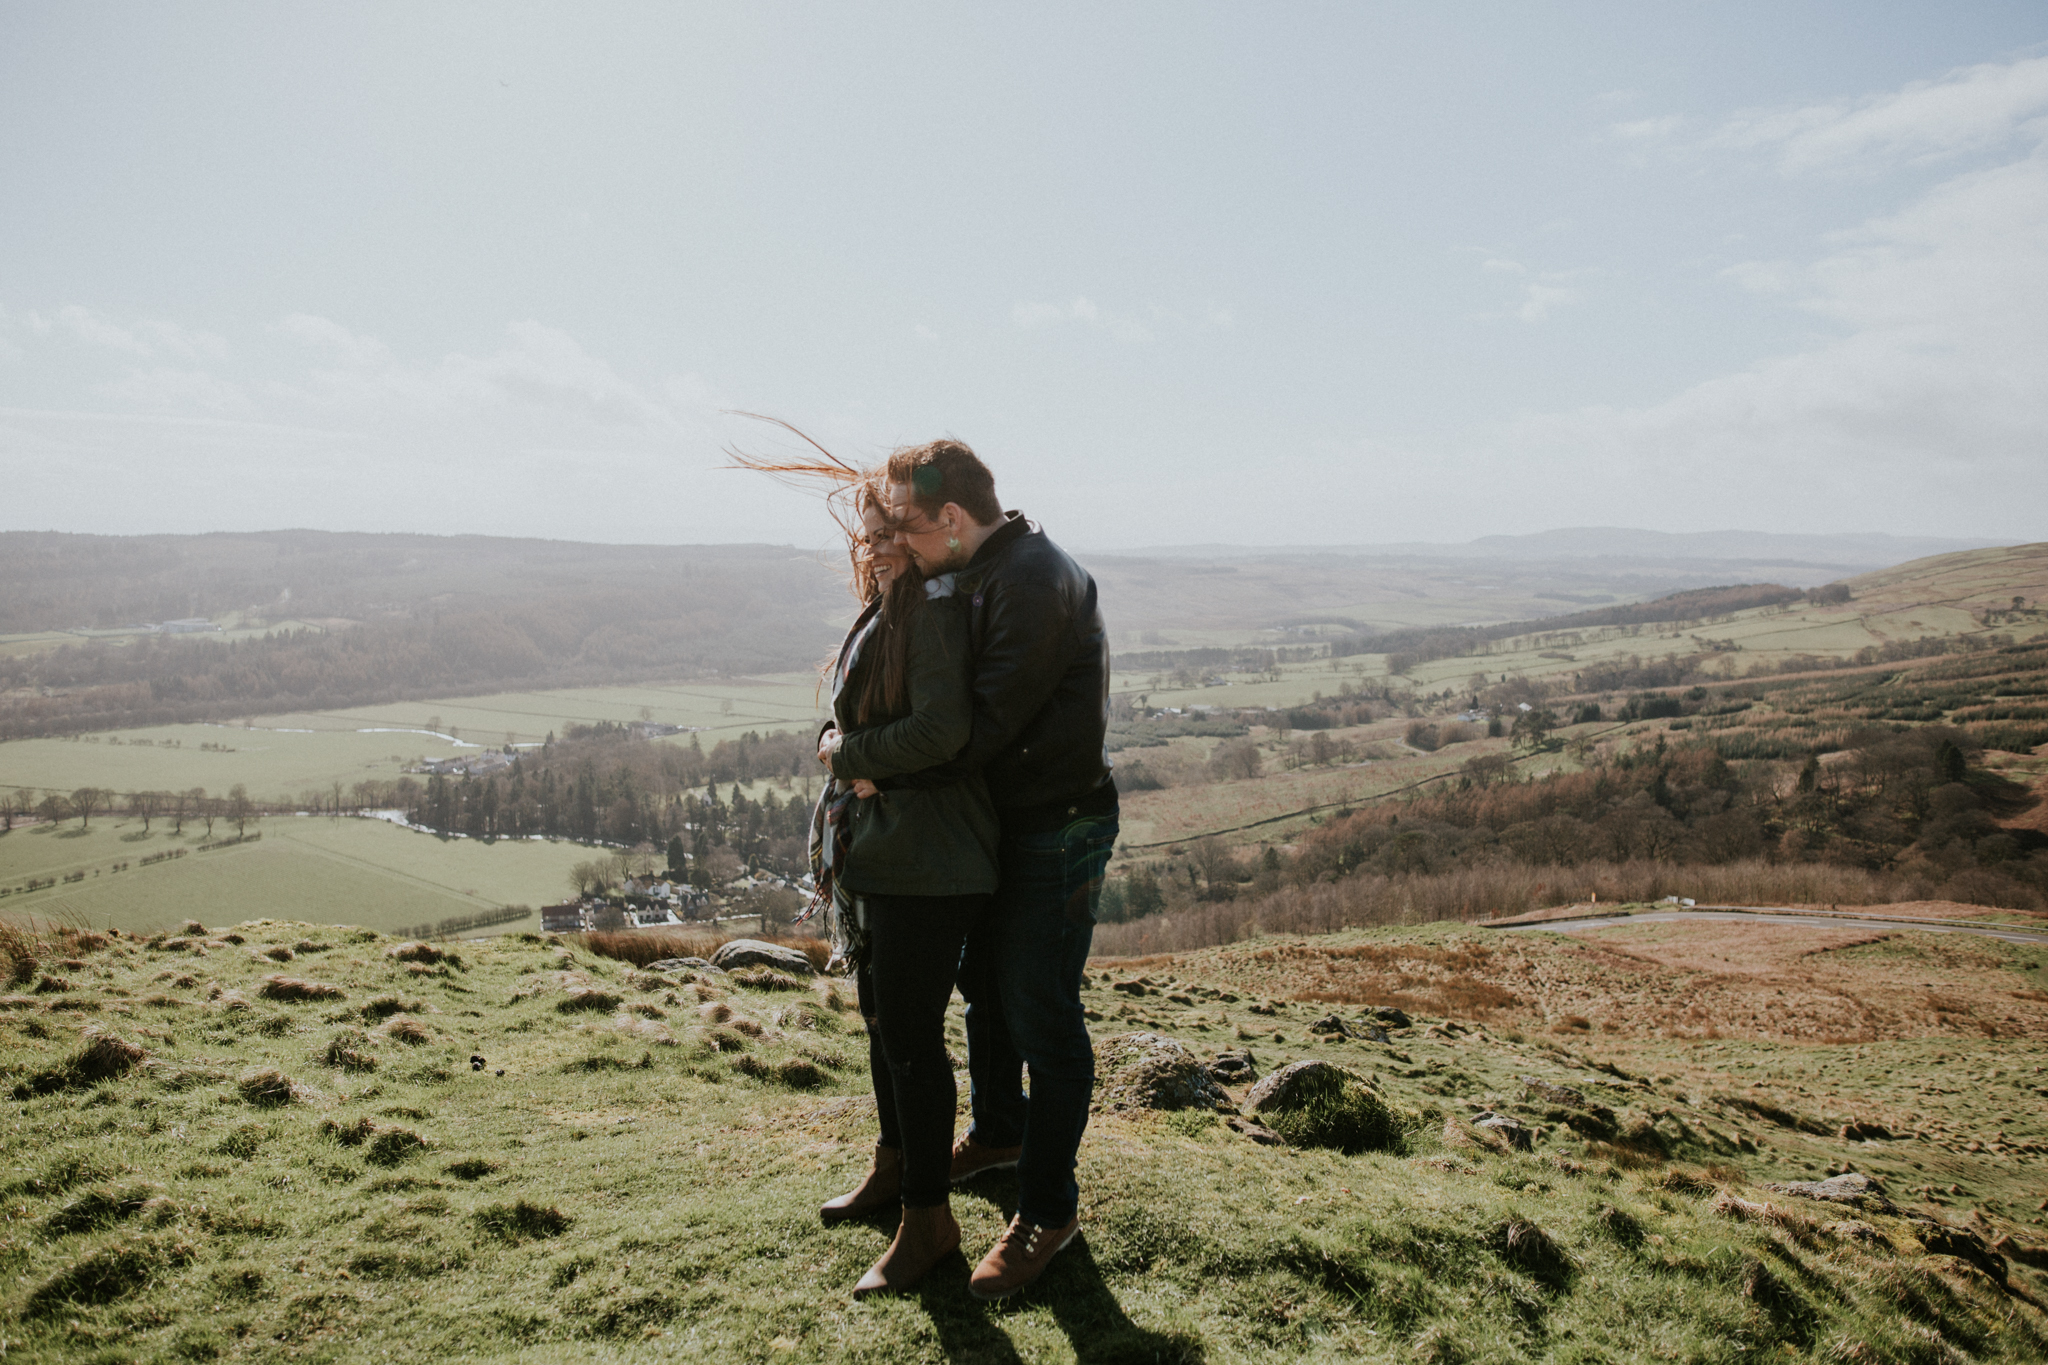 Creative wedding and engagement photographer with the cinematic and natural style